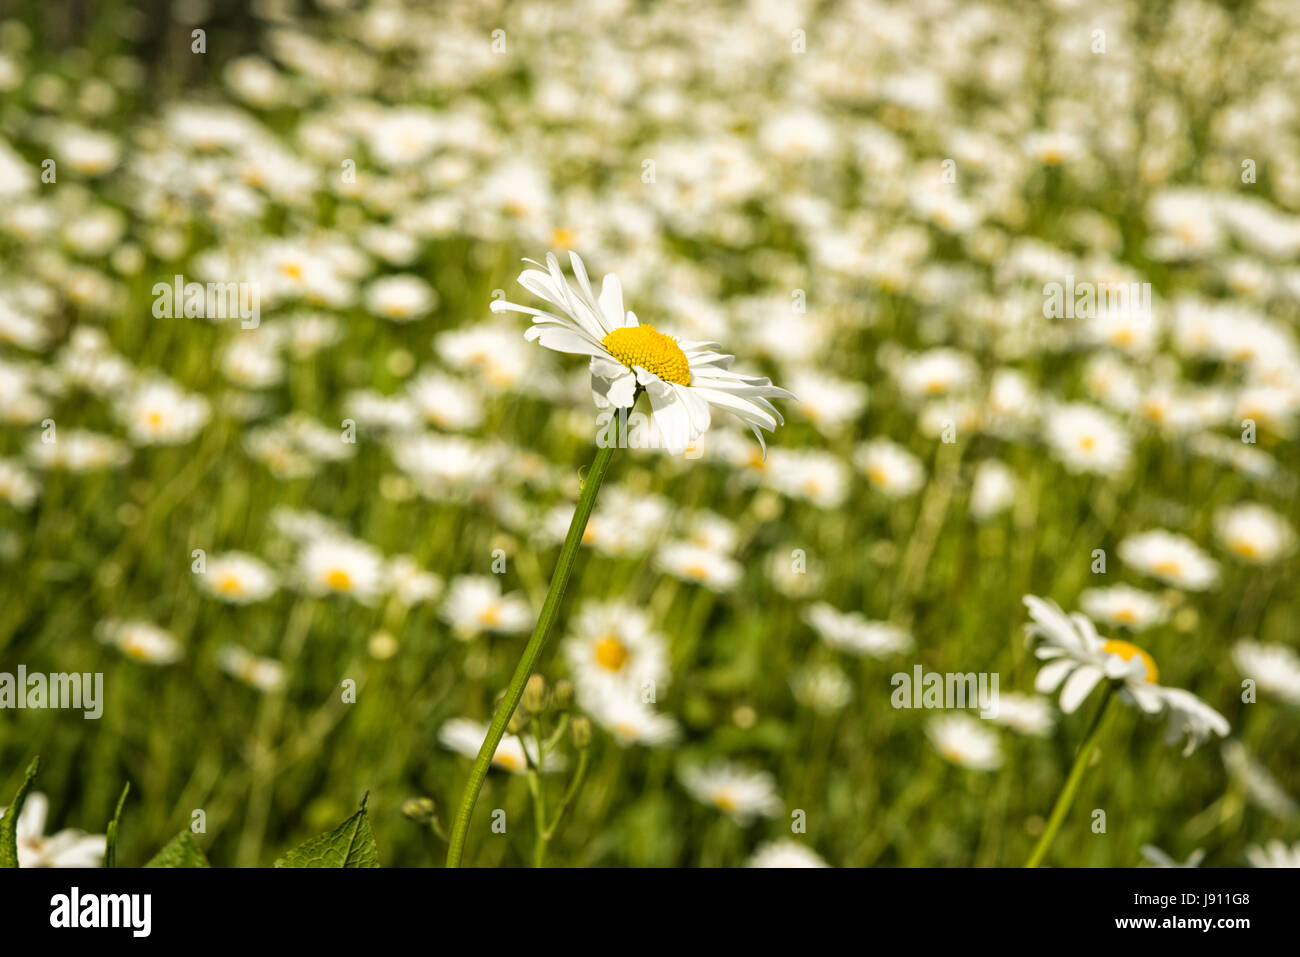 Rampton Cambridgeshire 31st May 2017. Wild Ox Eye daisy flowers bloom in a meadow in the warm summer weather. Temperatures reached 24 degrees centigrade in late afternoon sunshine on a day of mixed sun and clouds in the village just outside Cambridge. Credit Julian Eales/Alamy Live News Stock Photo